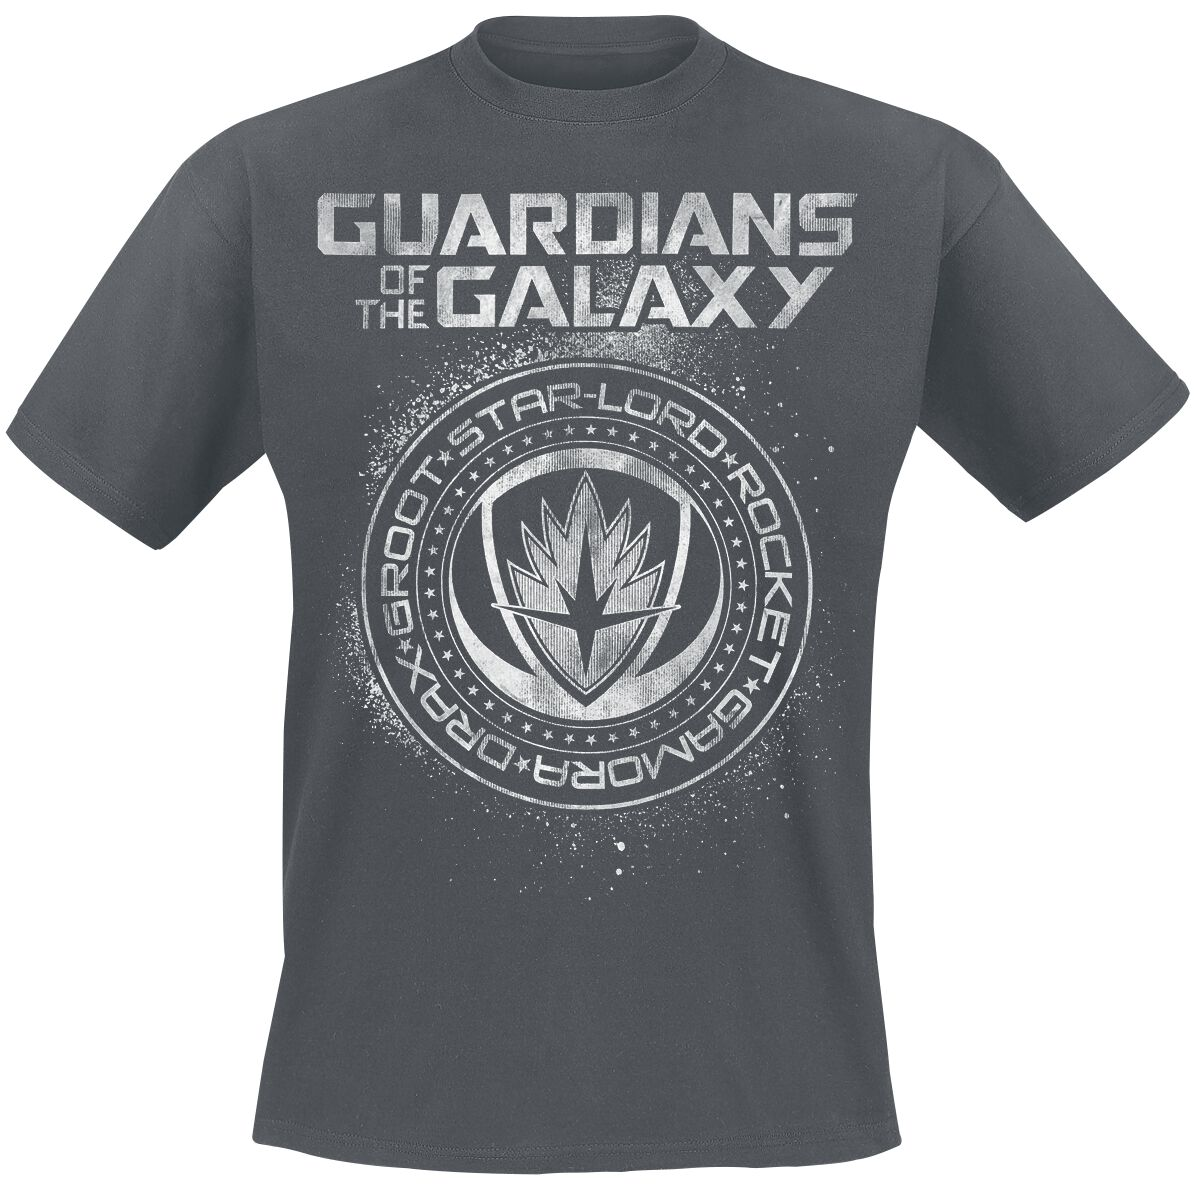 Image of   Guardians Of The Galaxy 2 - Seal T-Shirt mørk grå